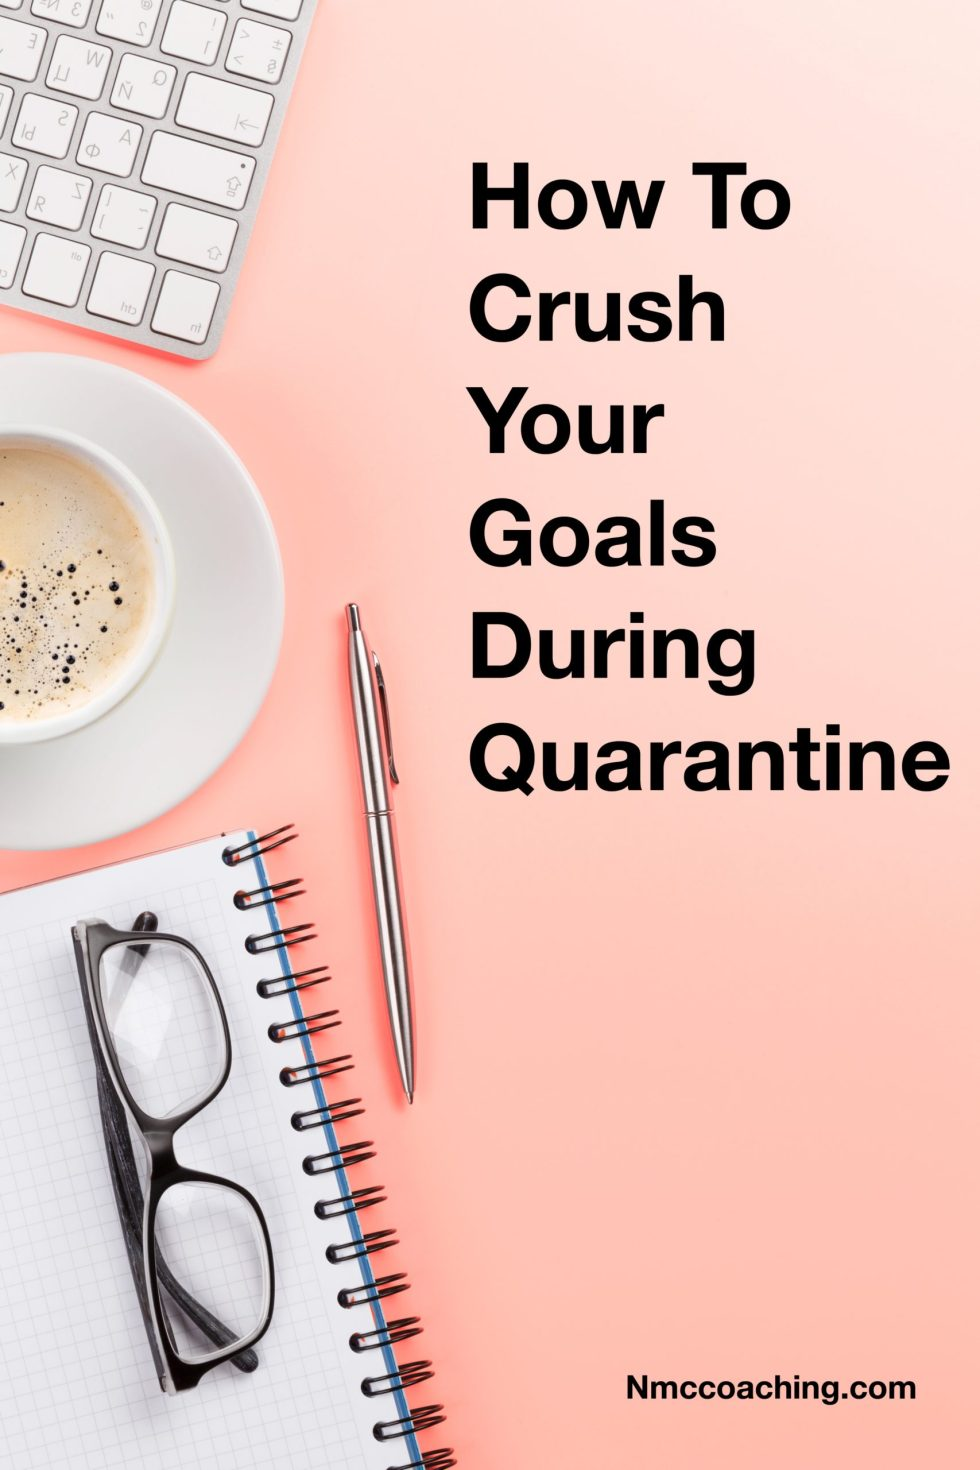 How to crush your goals during quarantine